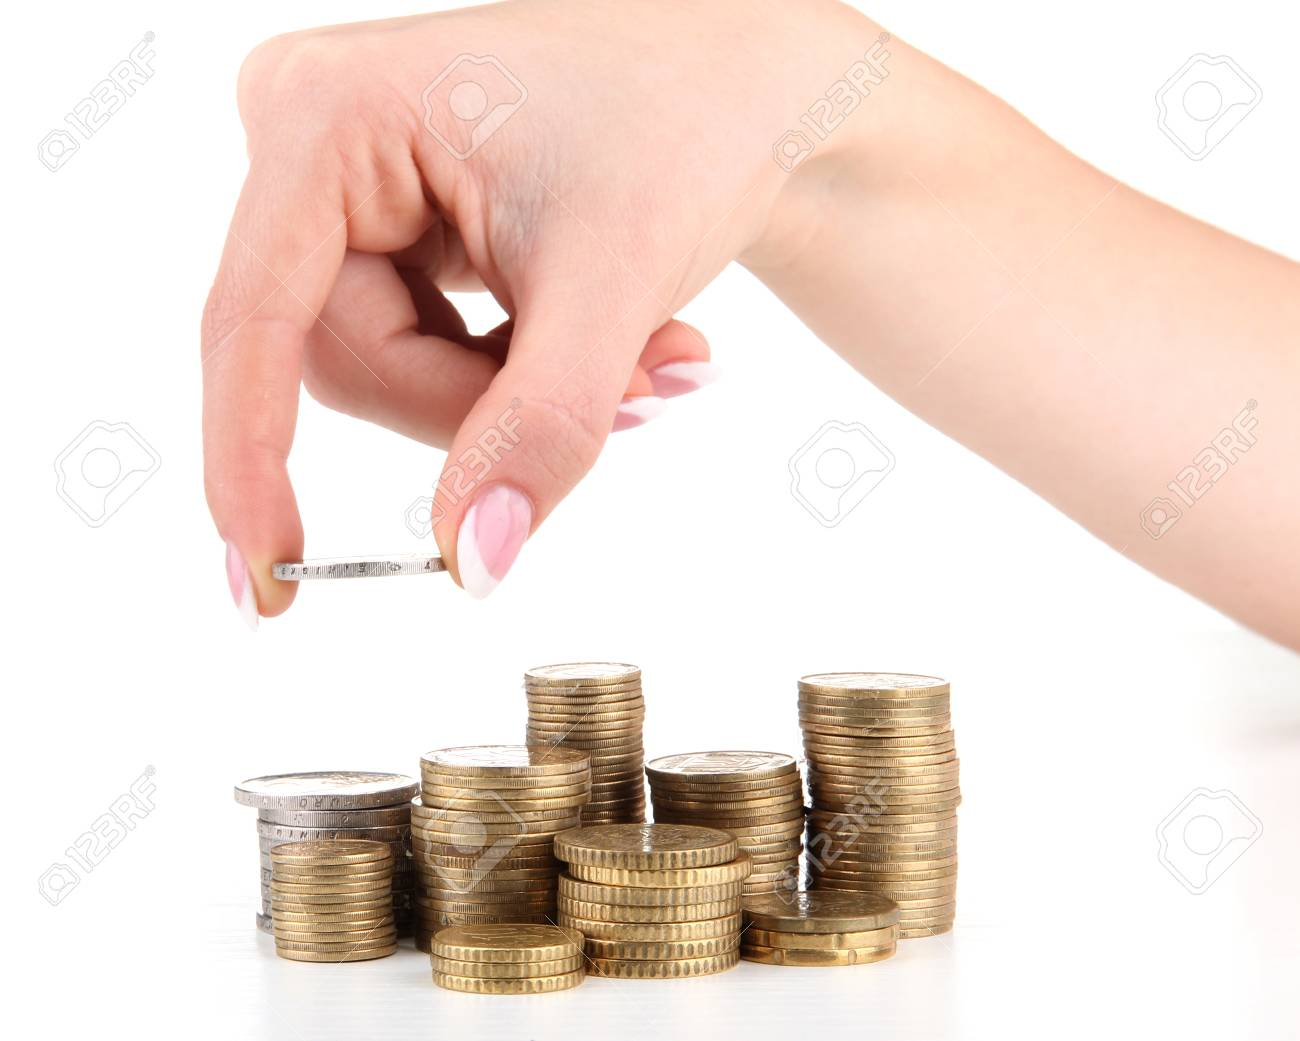 Woman hand with coins, close up Stock Photo - 16105791